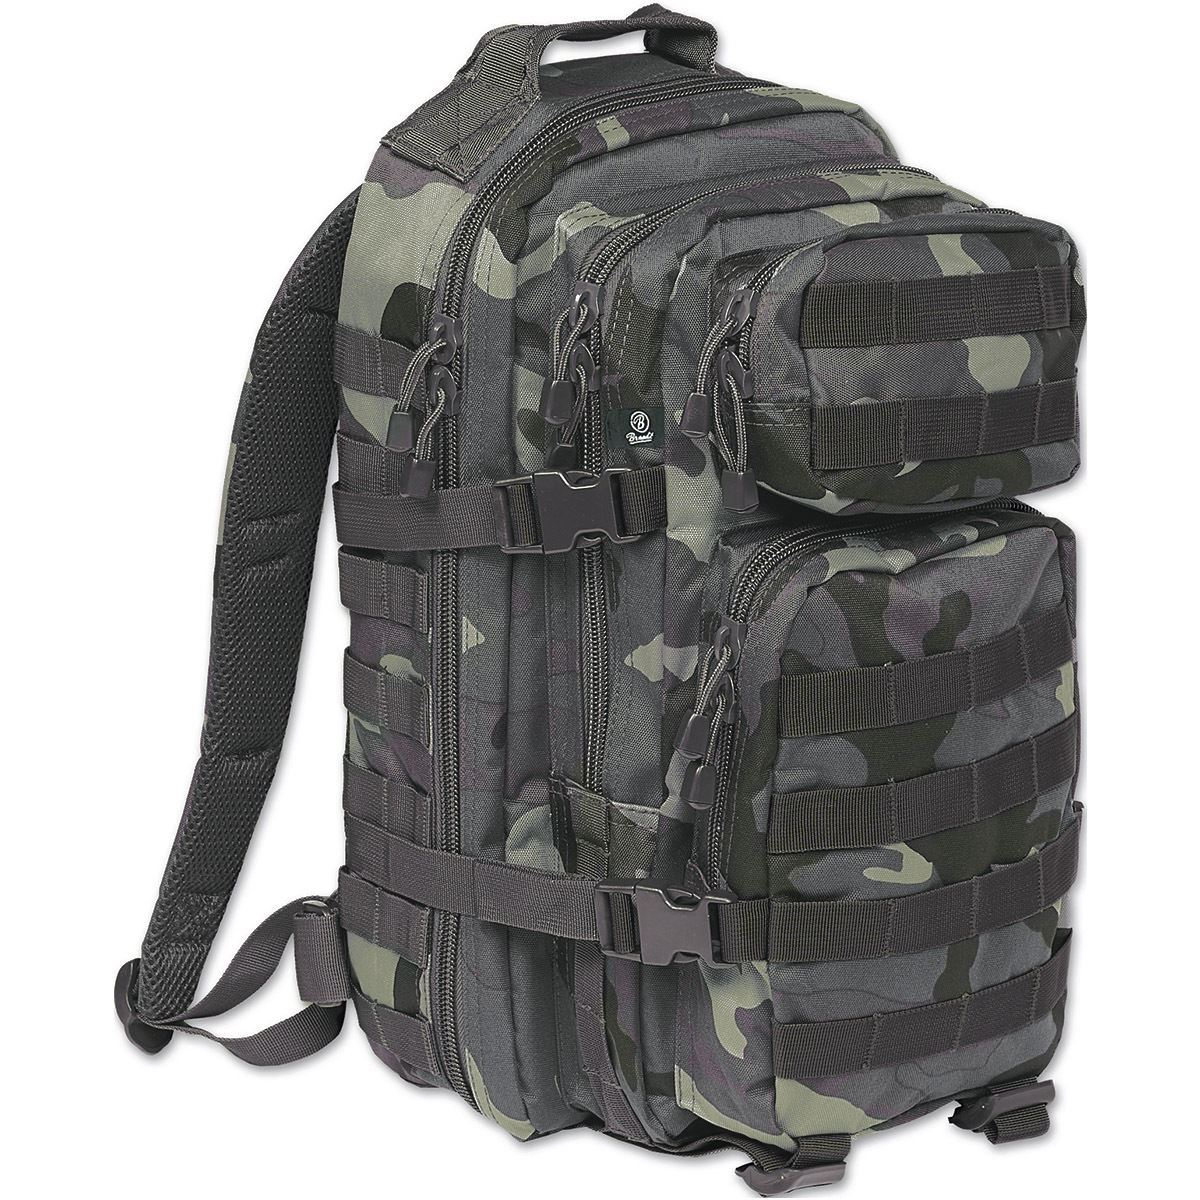 BRANDIT US COOPER MEDIUM RUCKSACK MOLLE BACKPACK ARMY NYLON PACK